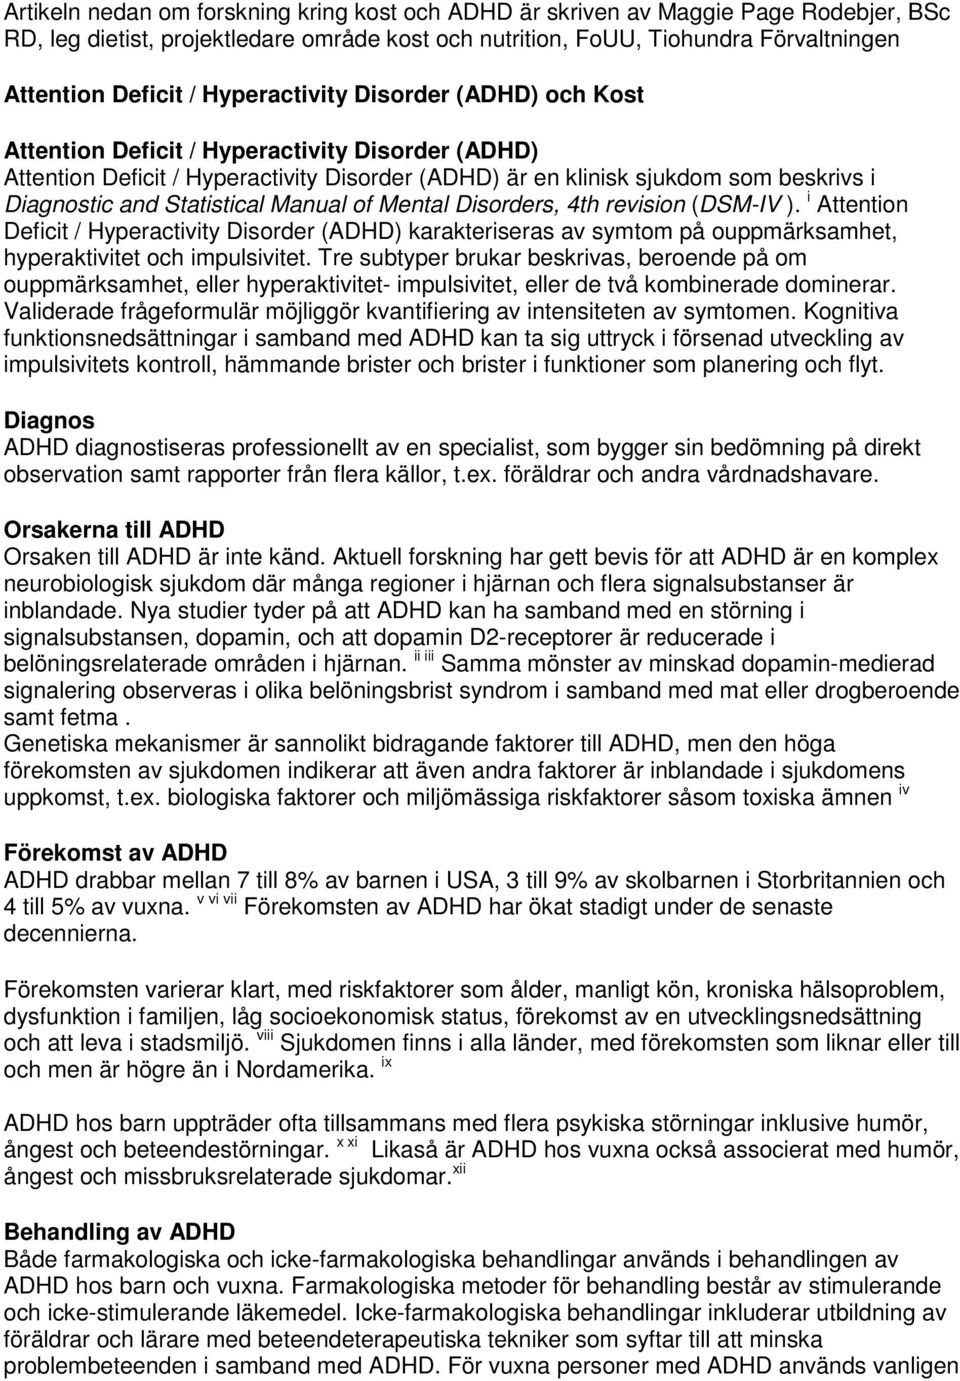 Statistical Manual of Mental Disorders, 4th revision (DSM-IV ). i Attention Deficit / Hyperactivity Disorder (ADHD) karakteriseras av symtom på ouppmärksamhet, hyperaktivitet och impulsivitet.